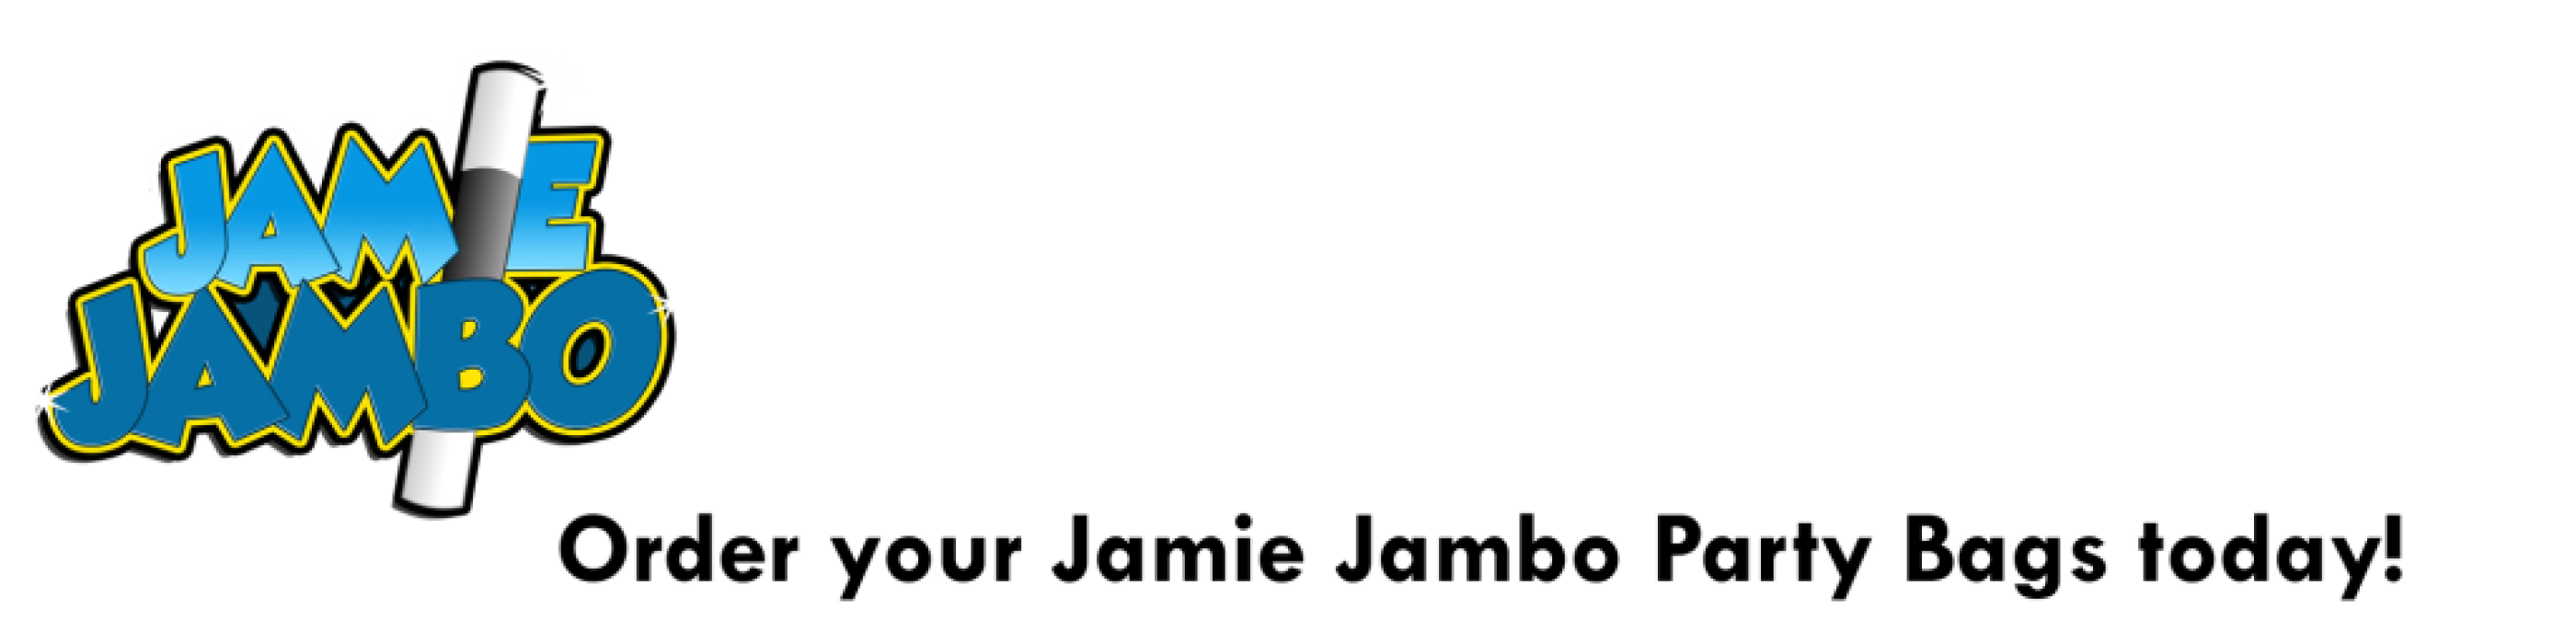 Jamie Jambo Party Bags